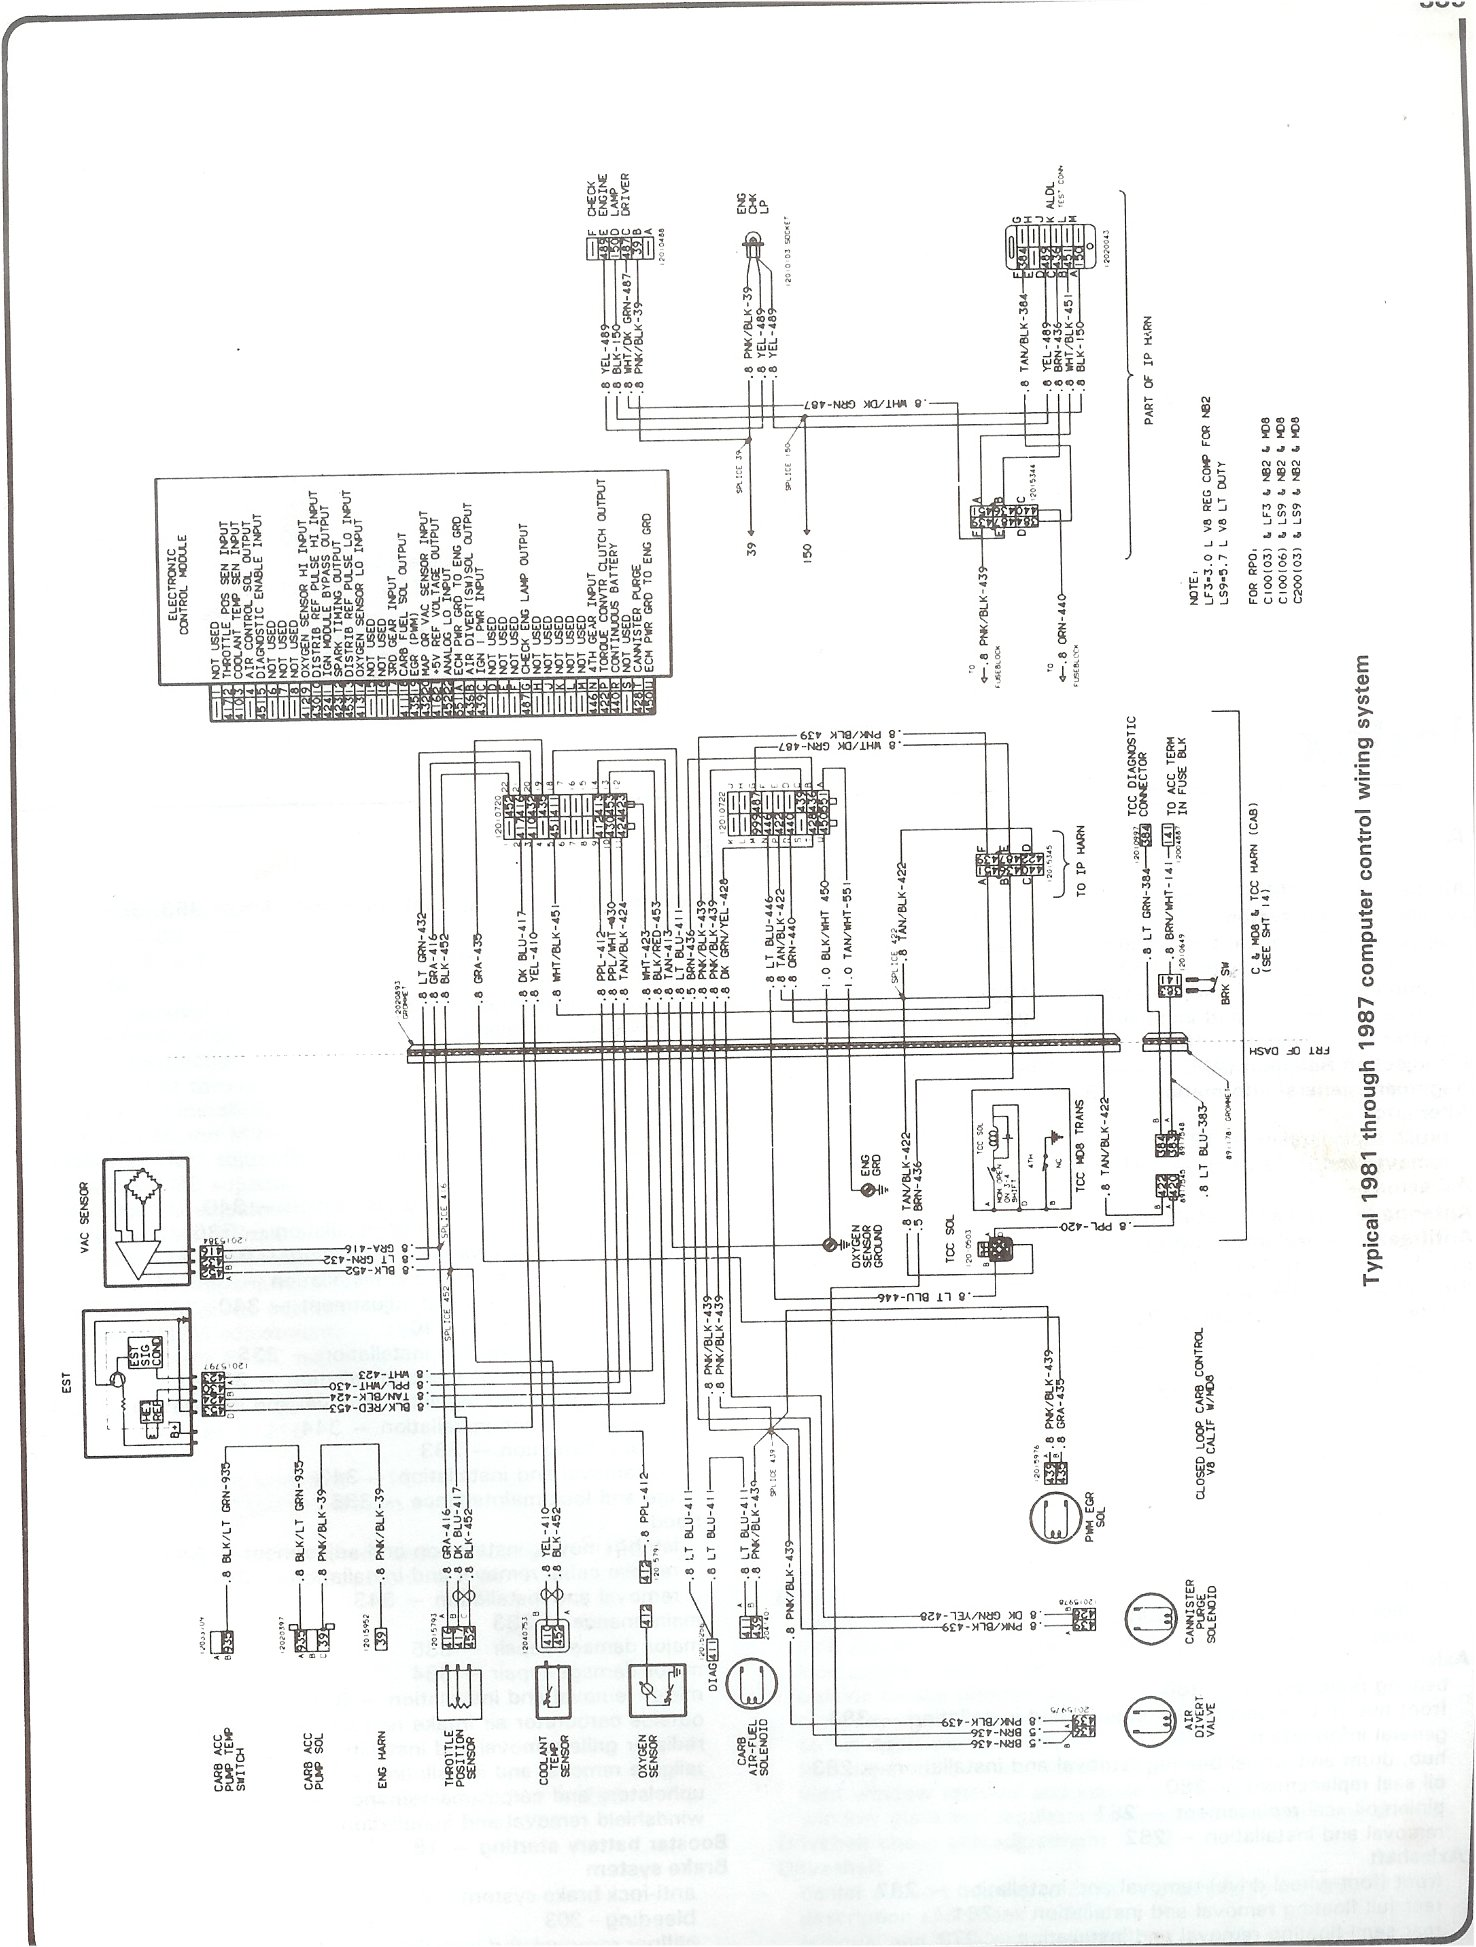 73 Dodge Truck Wiring Diagram Opinions About 1977 75 Chevy Detailed Schematics Rh Highcliffemedicalcentre Com 1984